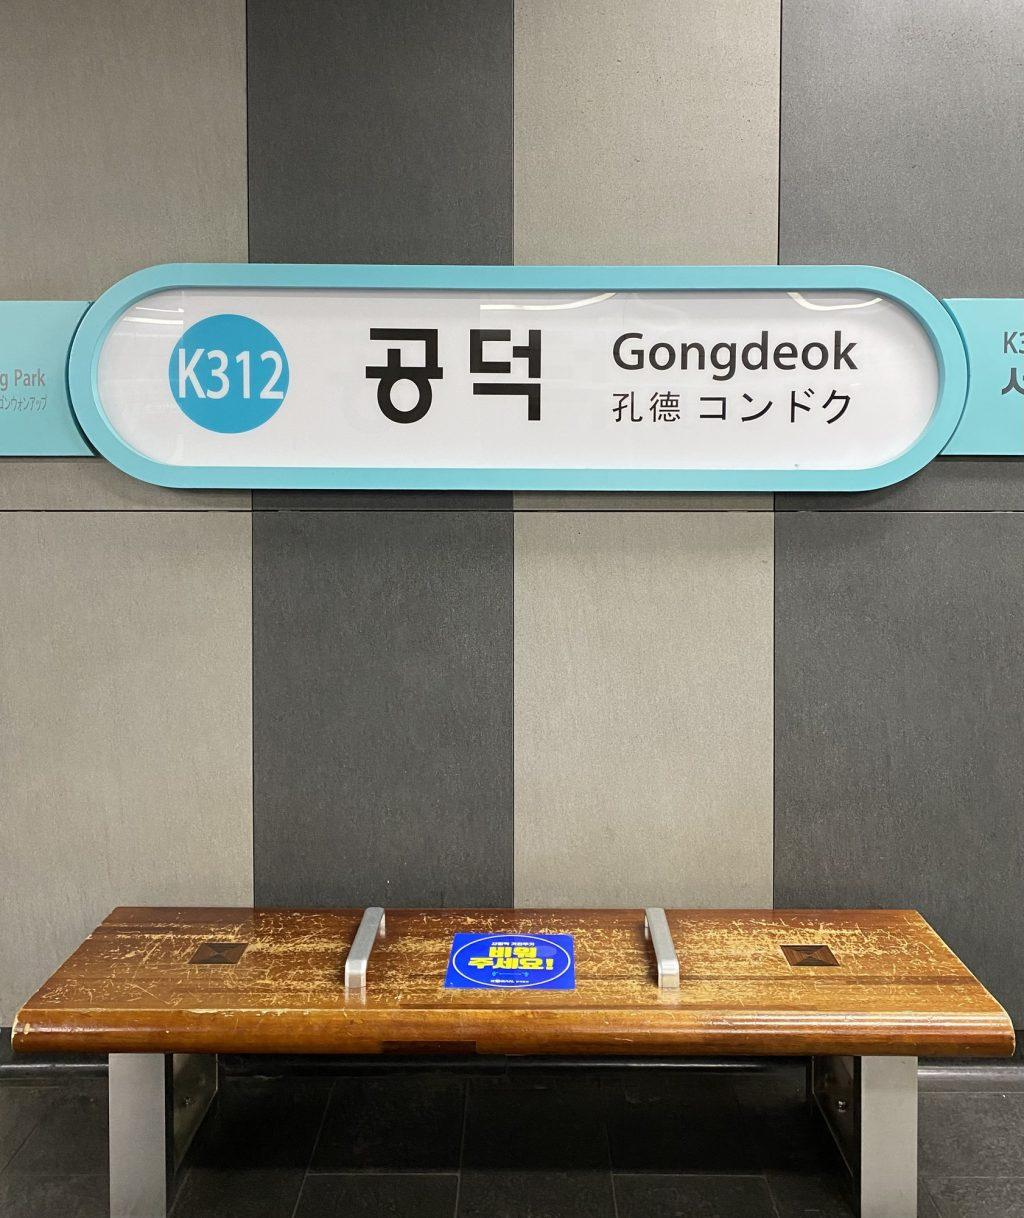 A sticker enforces the social distancing regulations for a bench inside the Gongdeok Station on Oct. 22. Every subway station I visited had similar reminders.